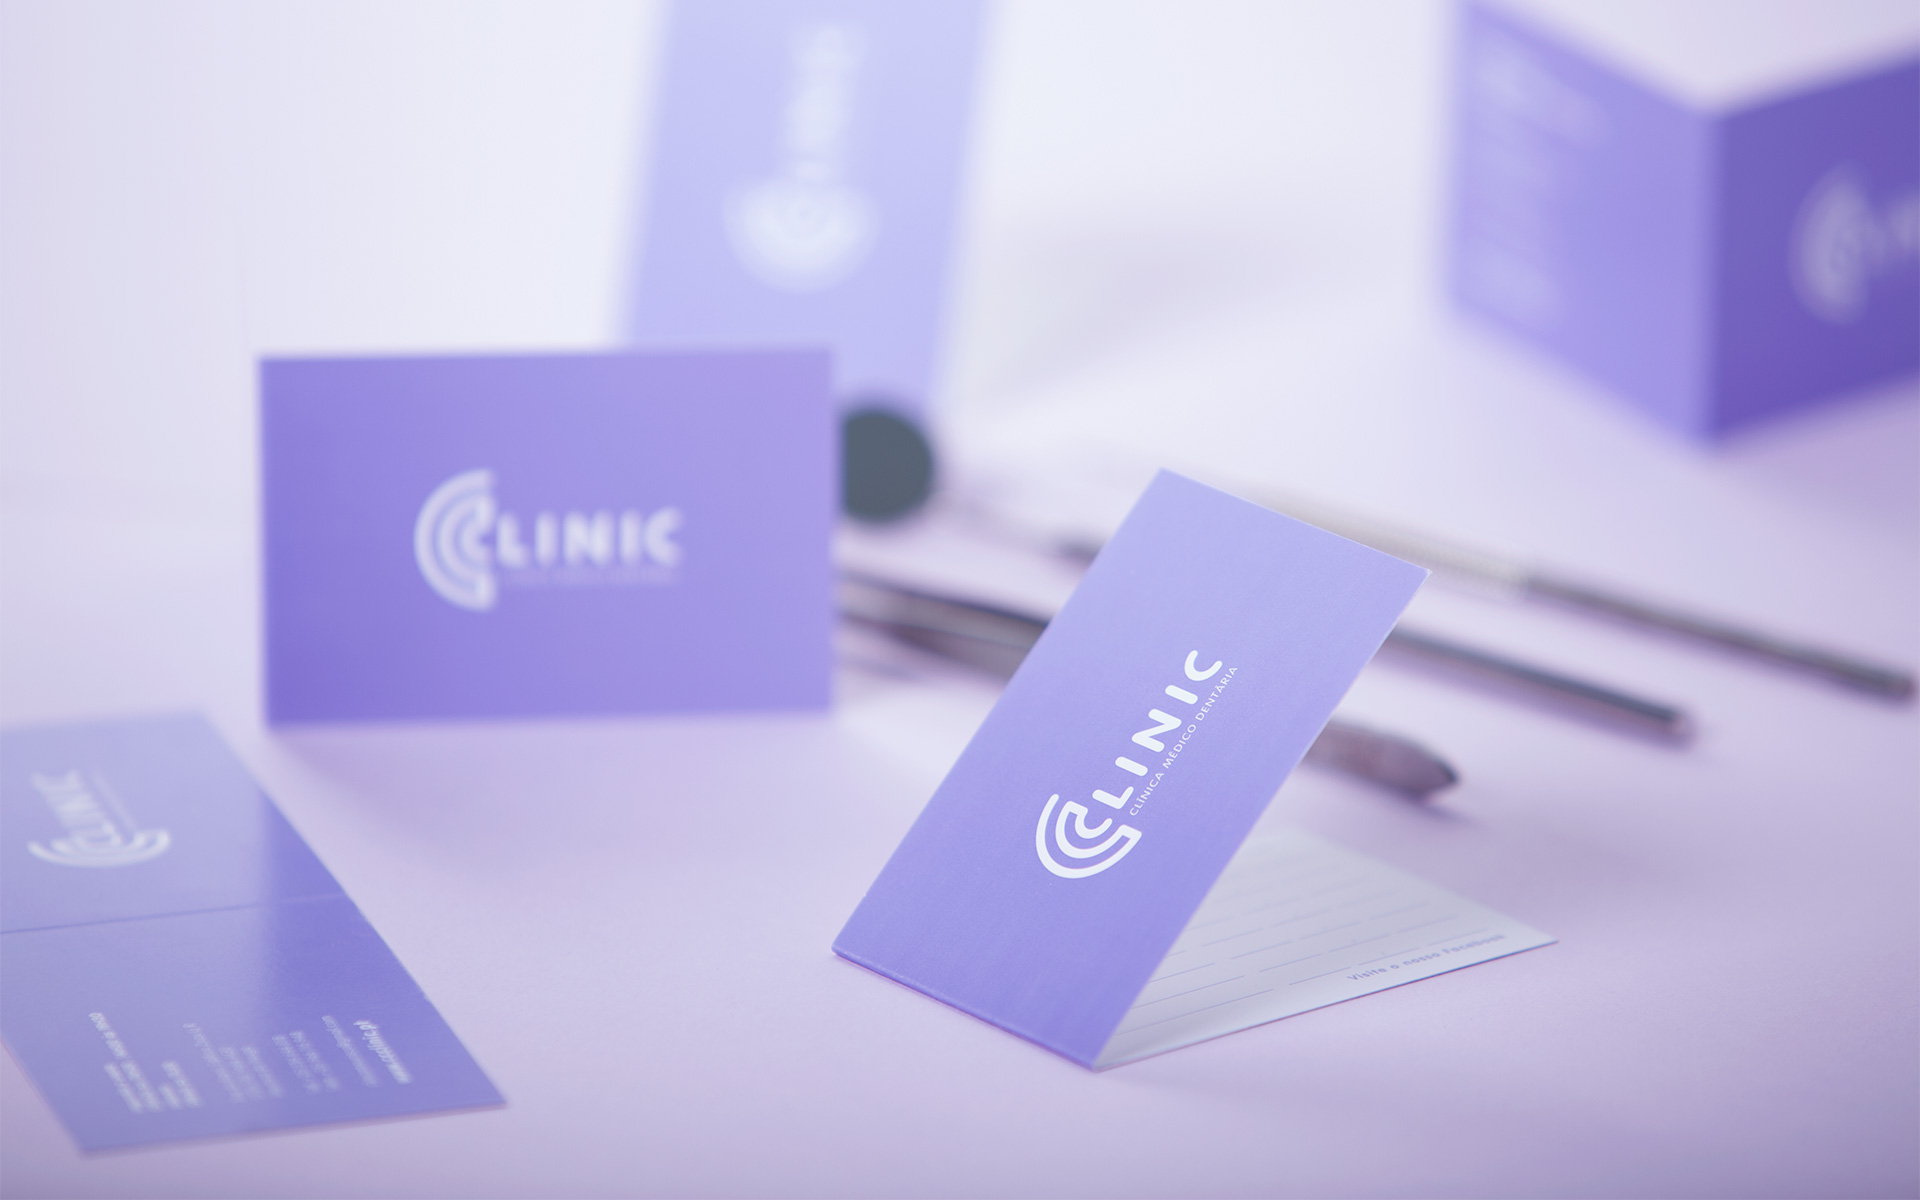 THINKING IN A HEALTHY SMILE CC CLINIC PRESENTS A NEW BRAND IMAGE